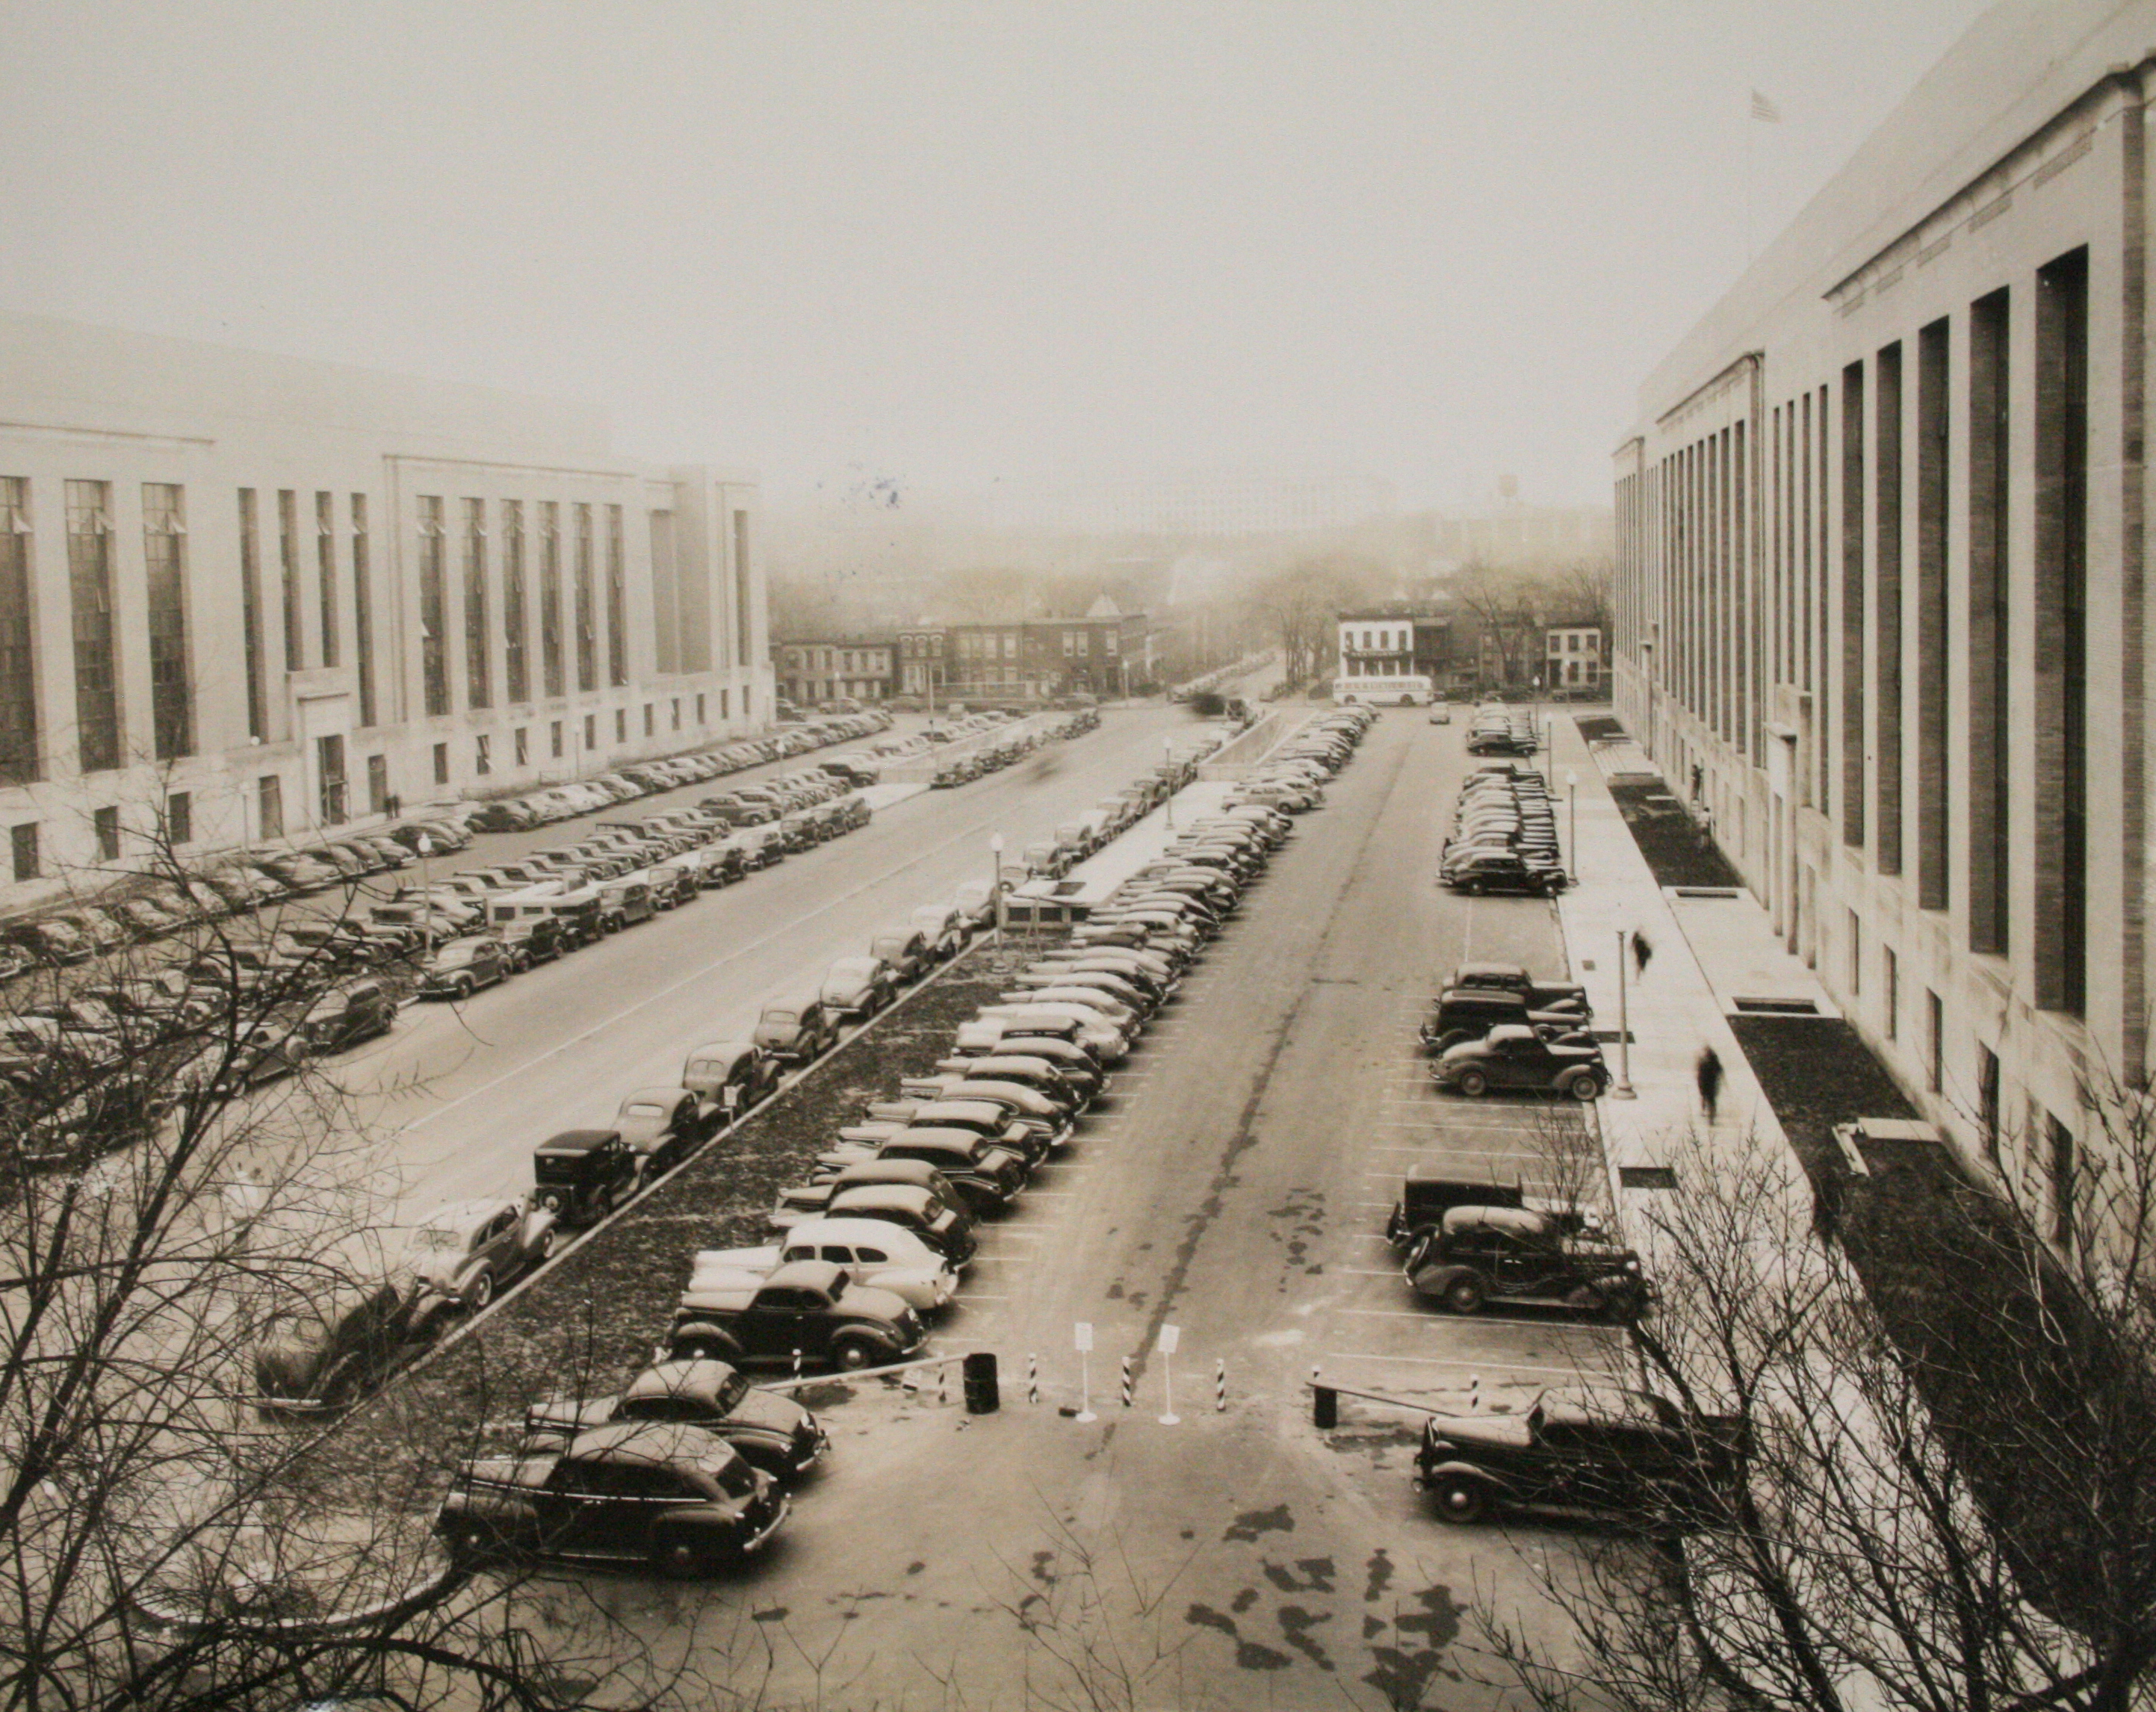 Surface parking spaces along the C Street facade, c. 1939.